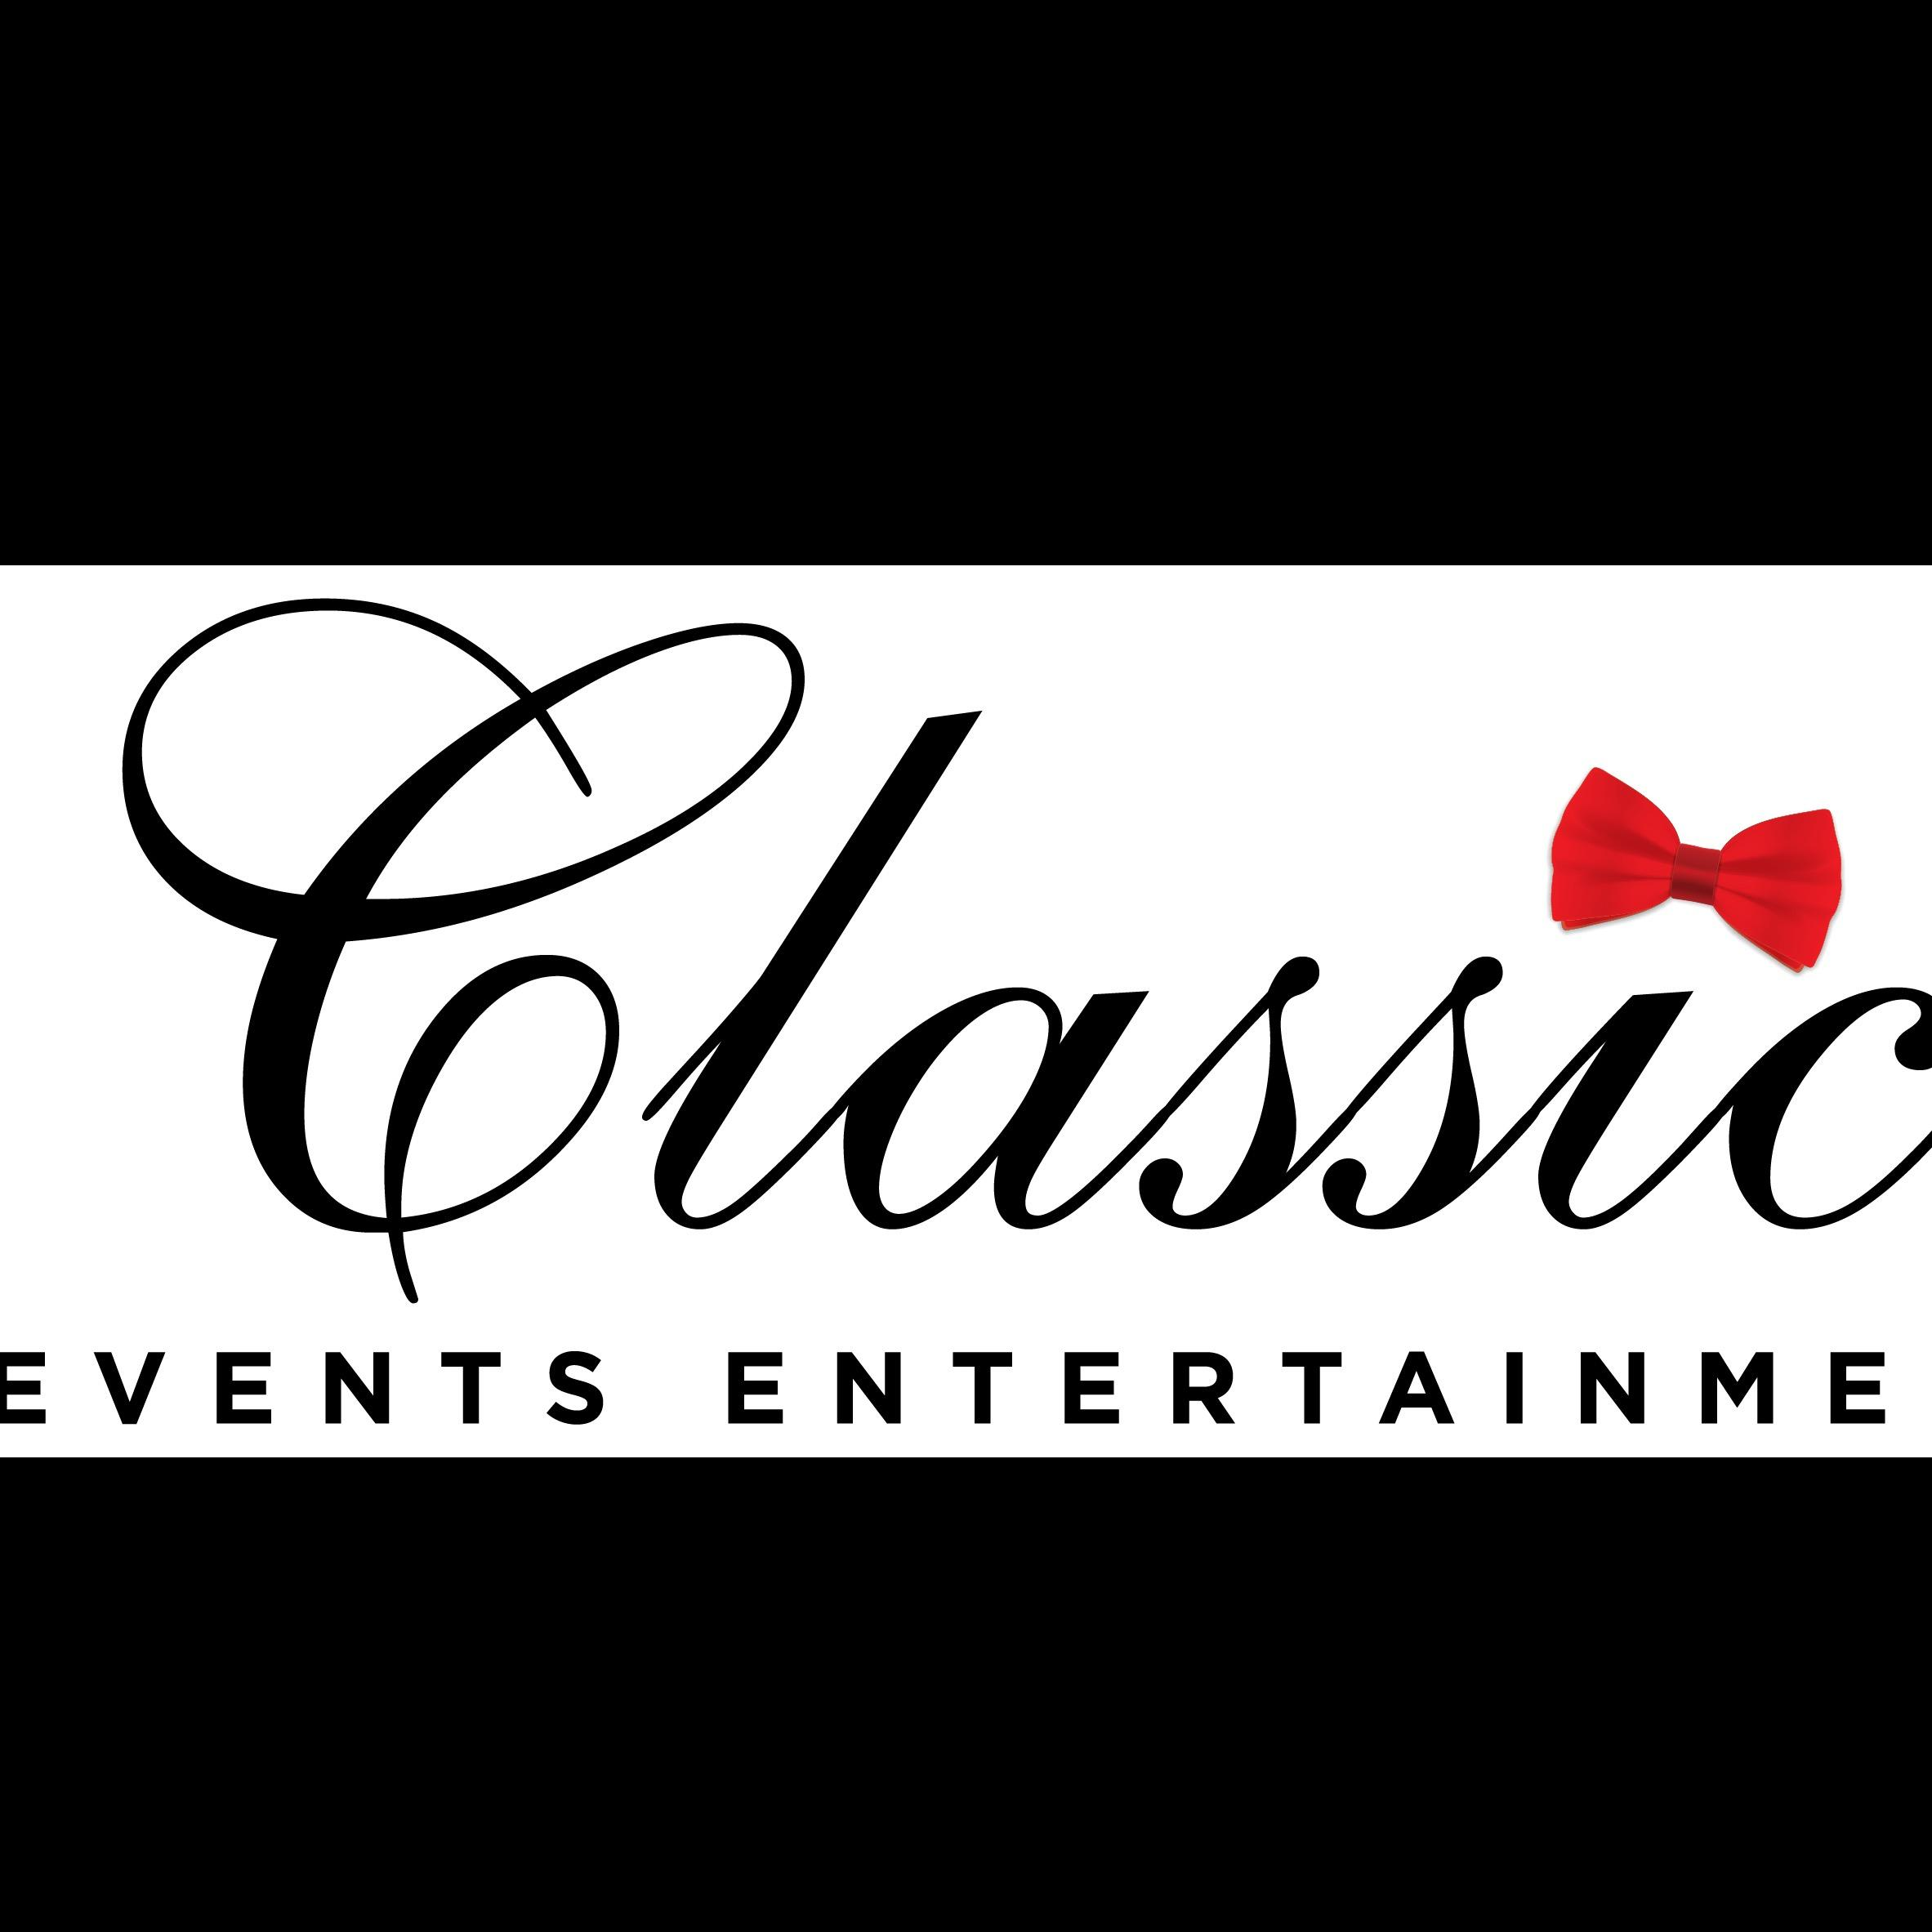 Classic Events Entertainment